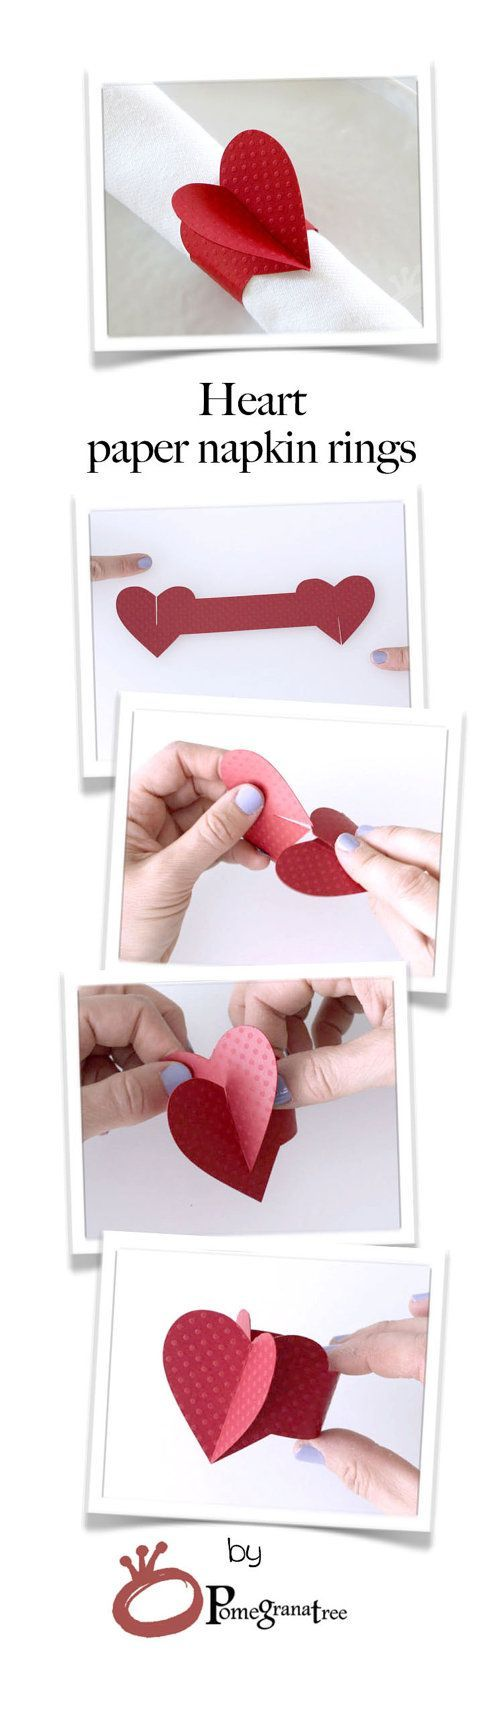 Valentines Day Decor, Red Heart Paper Napkin Rings, Party Decorations, Wedding Decor, Romantic Table Decor, Red Napkin Rings Set of 4 HTD01  These napkin rings are a beautiful added touch for your special occasion and perfect for decorating any party table.  These HEART shaped napkin rings are cut out of premium heavy paper, with delicate dots texture. Napkin rings are sold in sets of four. Napkin rings are shipped flat. Easy assembly - no glue or tape needed! Size:  Flat: 7.5 / 19cm…